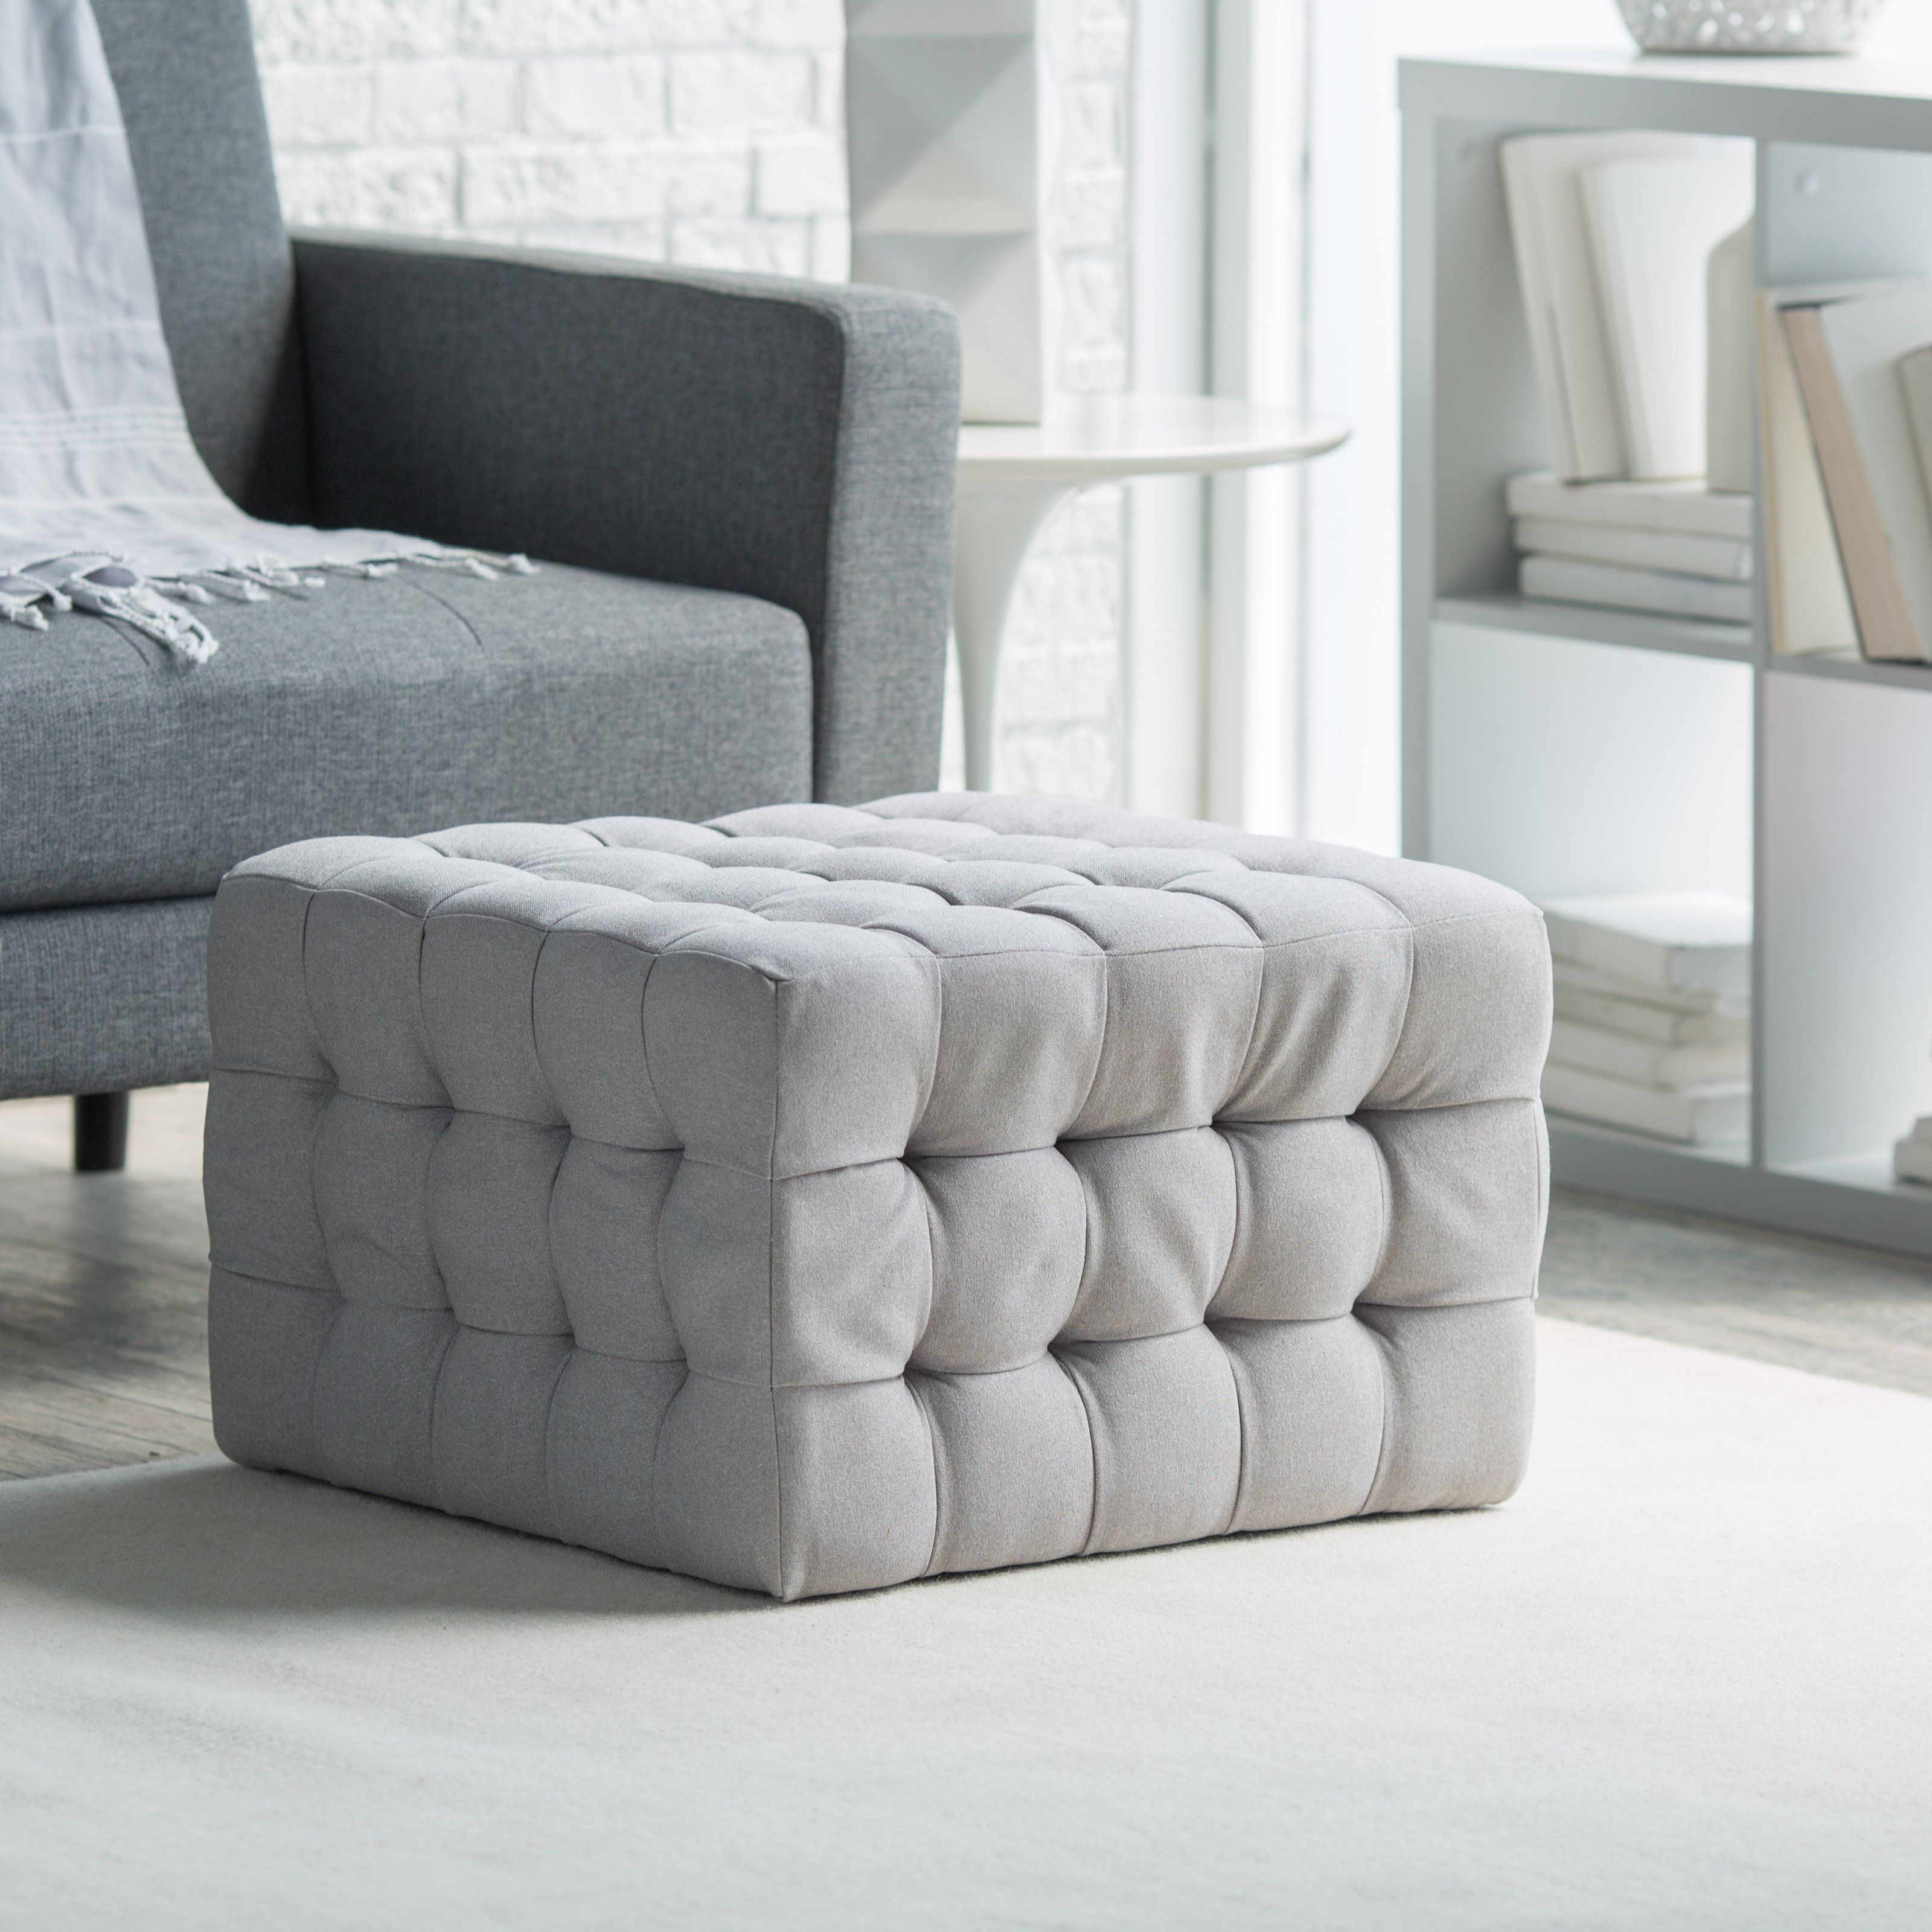 Get hip to the square with the Belham Living Allover Tufted Square ...